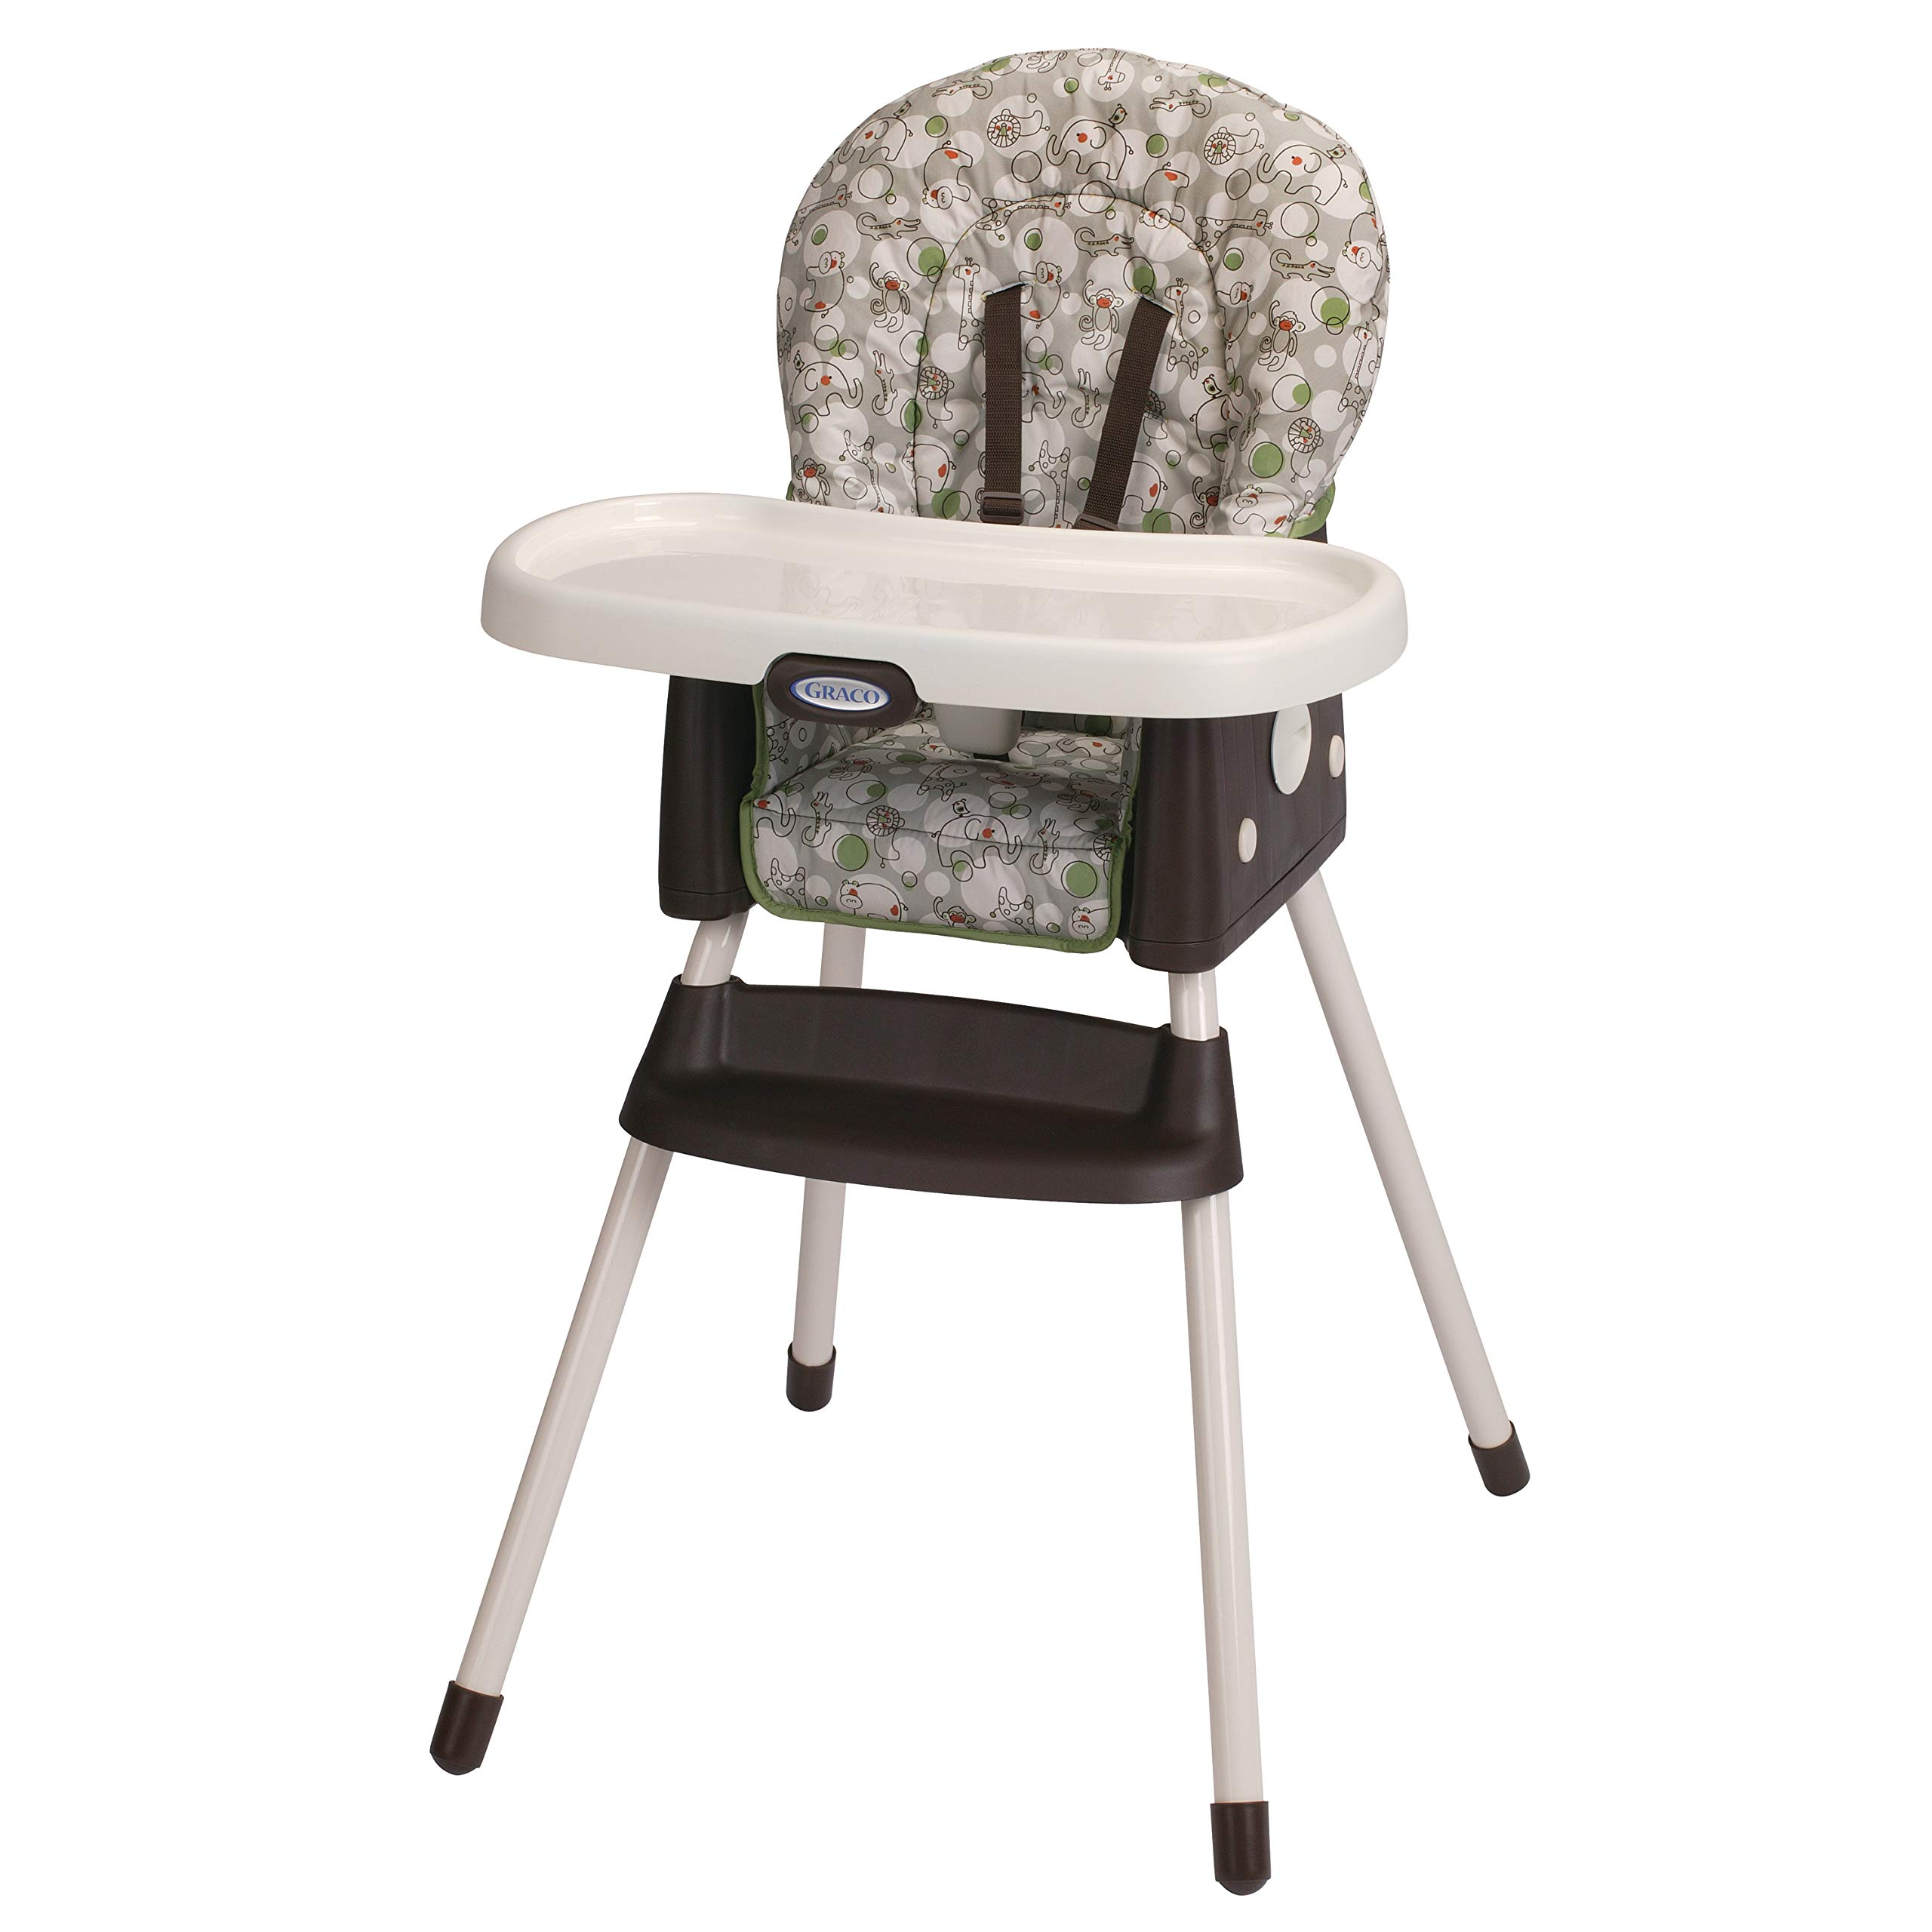 Amazon.com : Graco SimpleSwitch Convertible High Chair and Booster